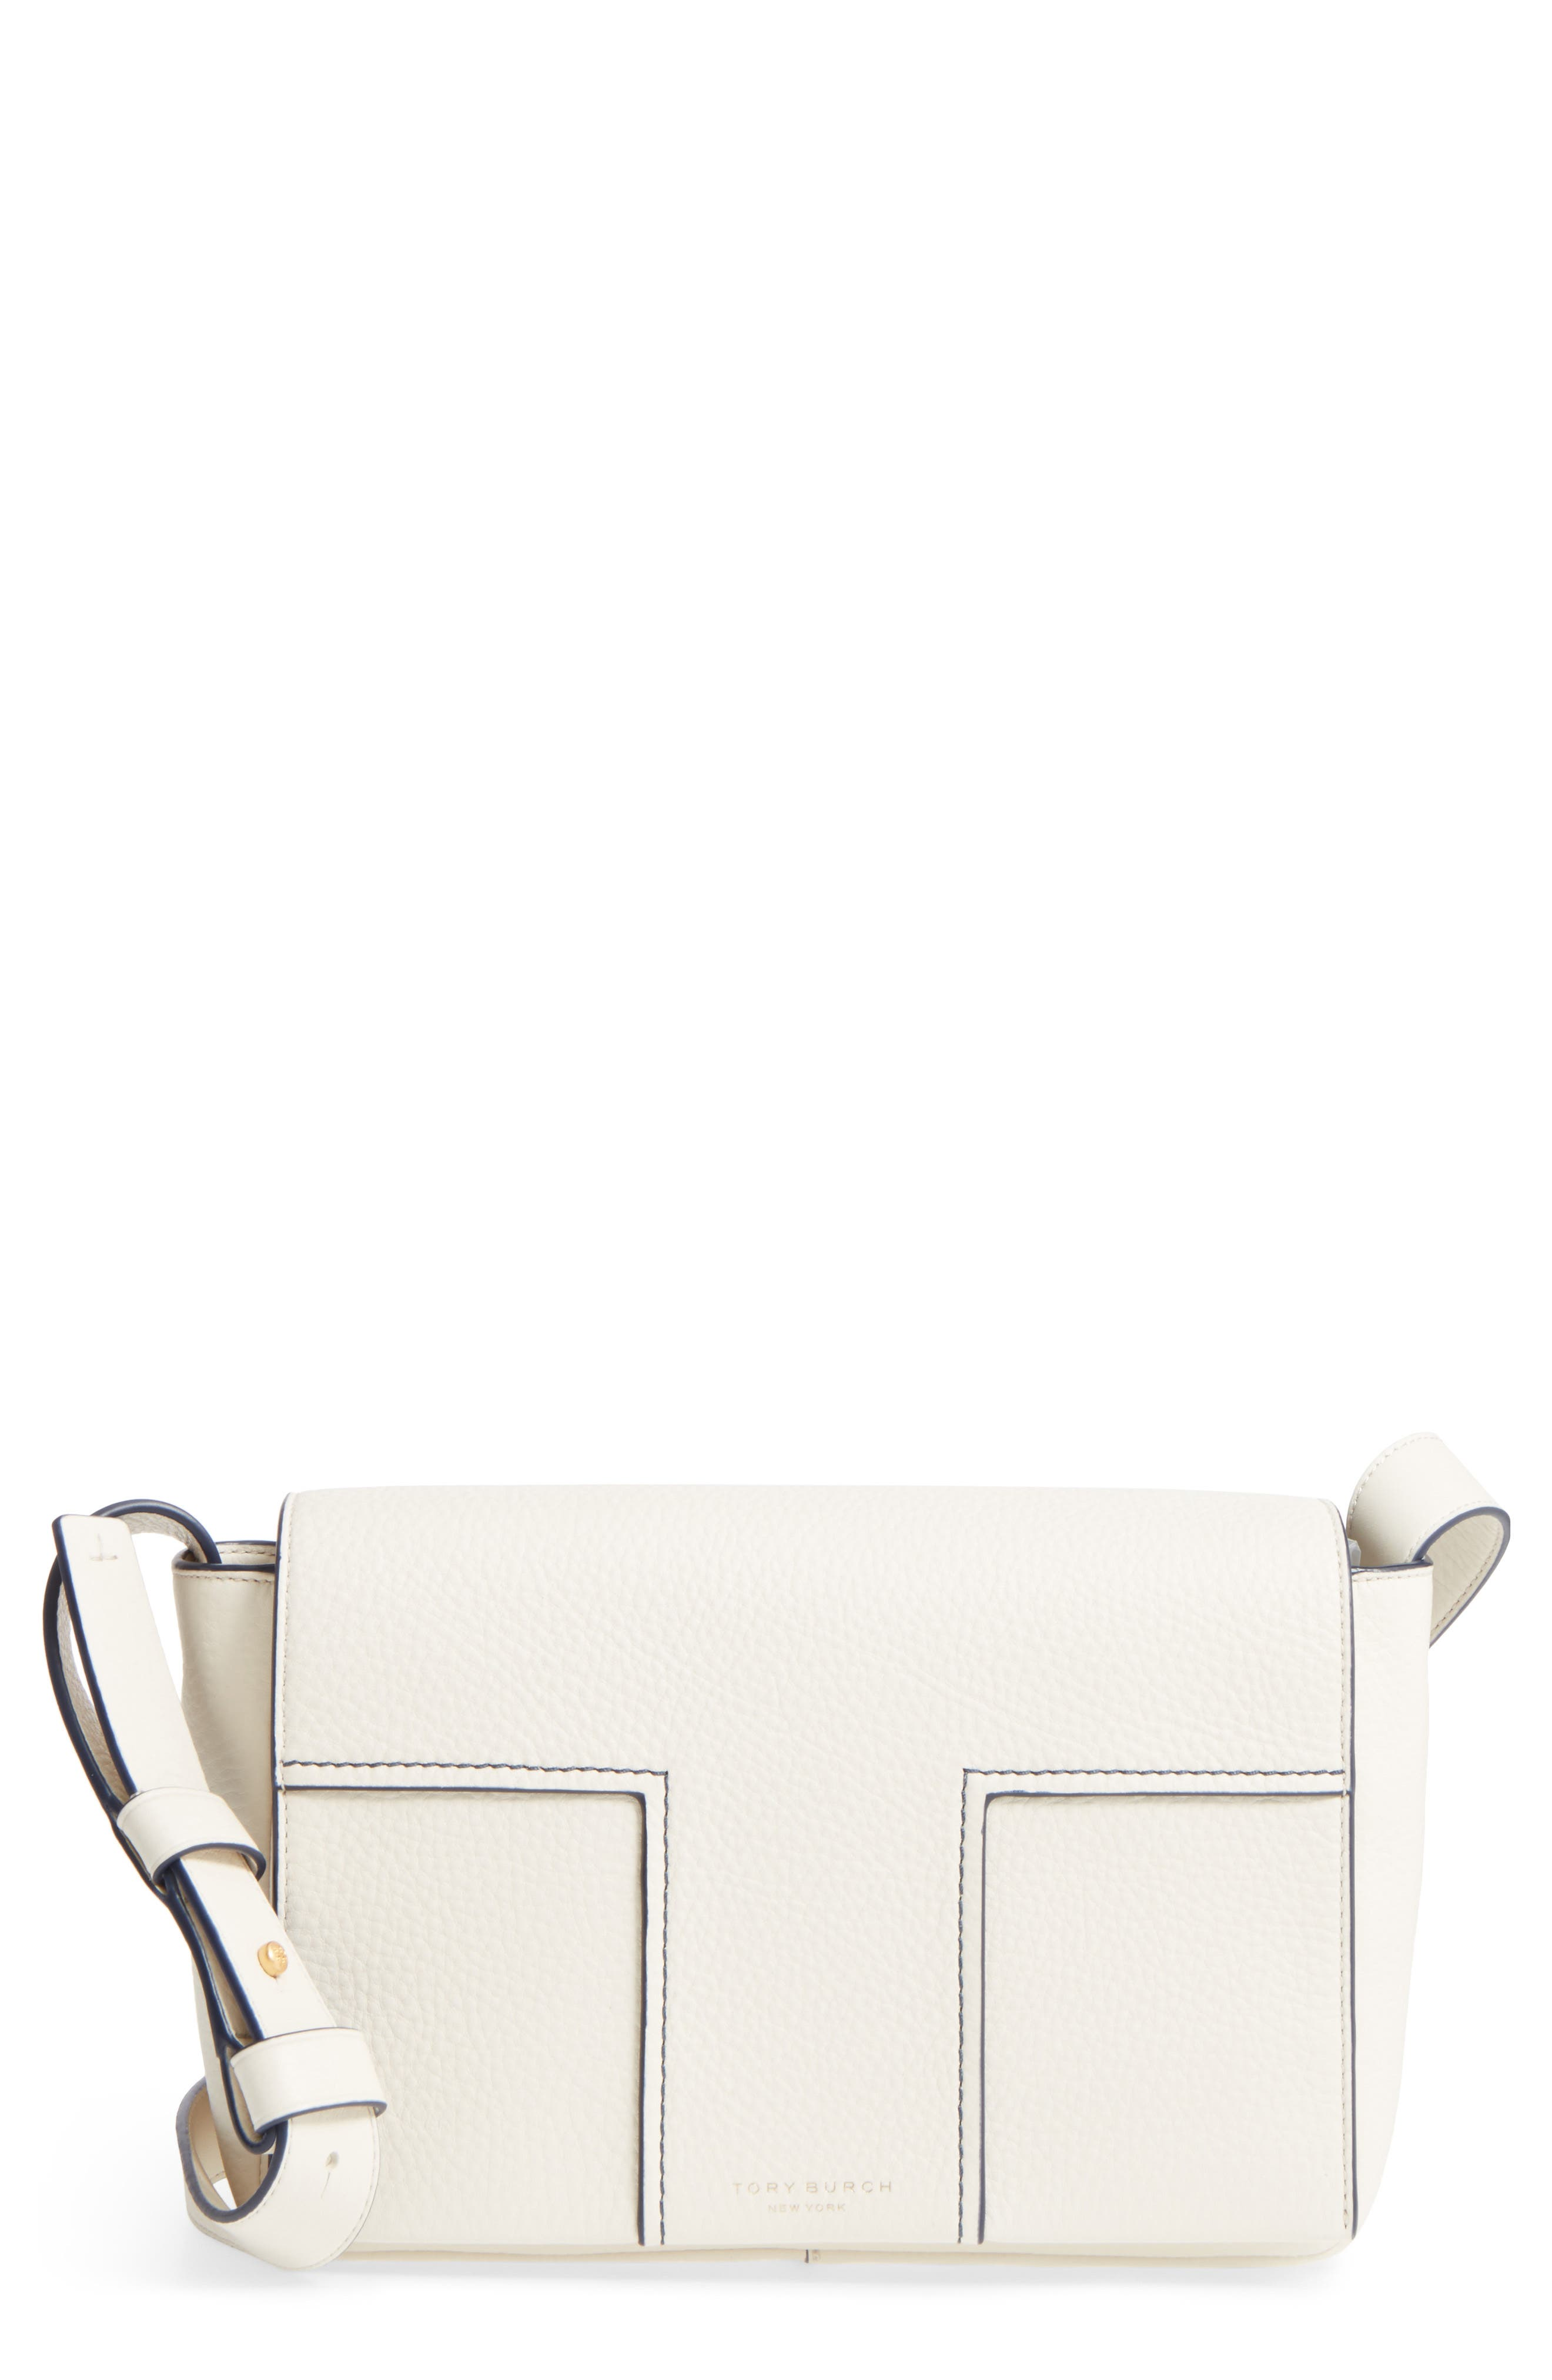 Tory Burch Block-T Pebbled Leather Shoulder Bag